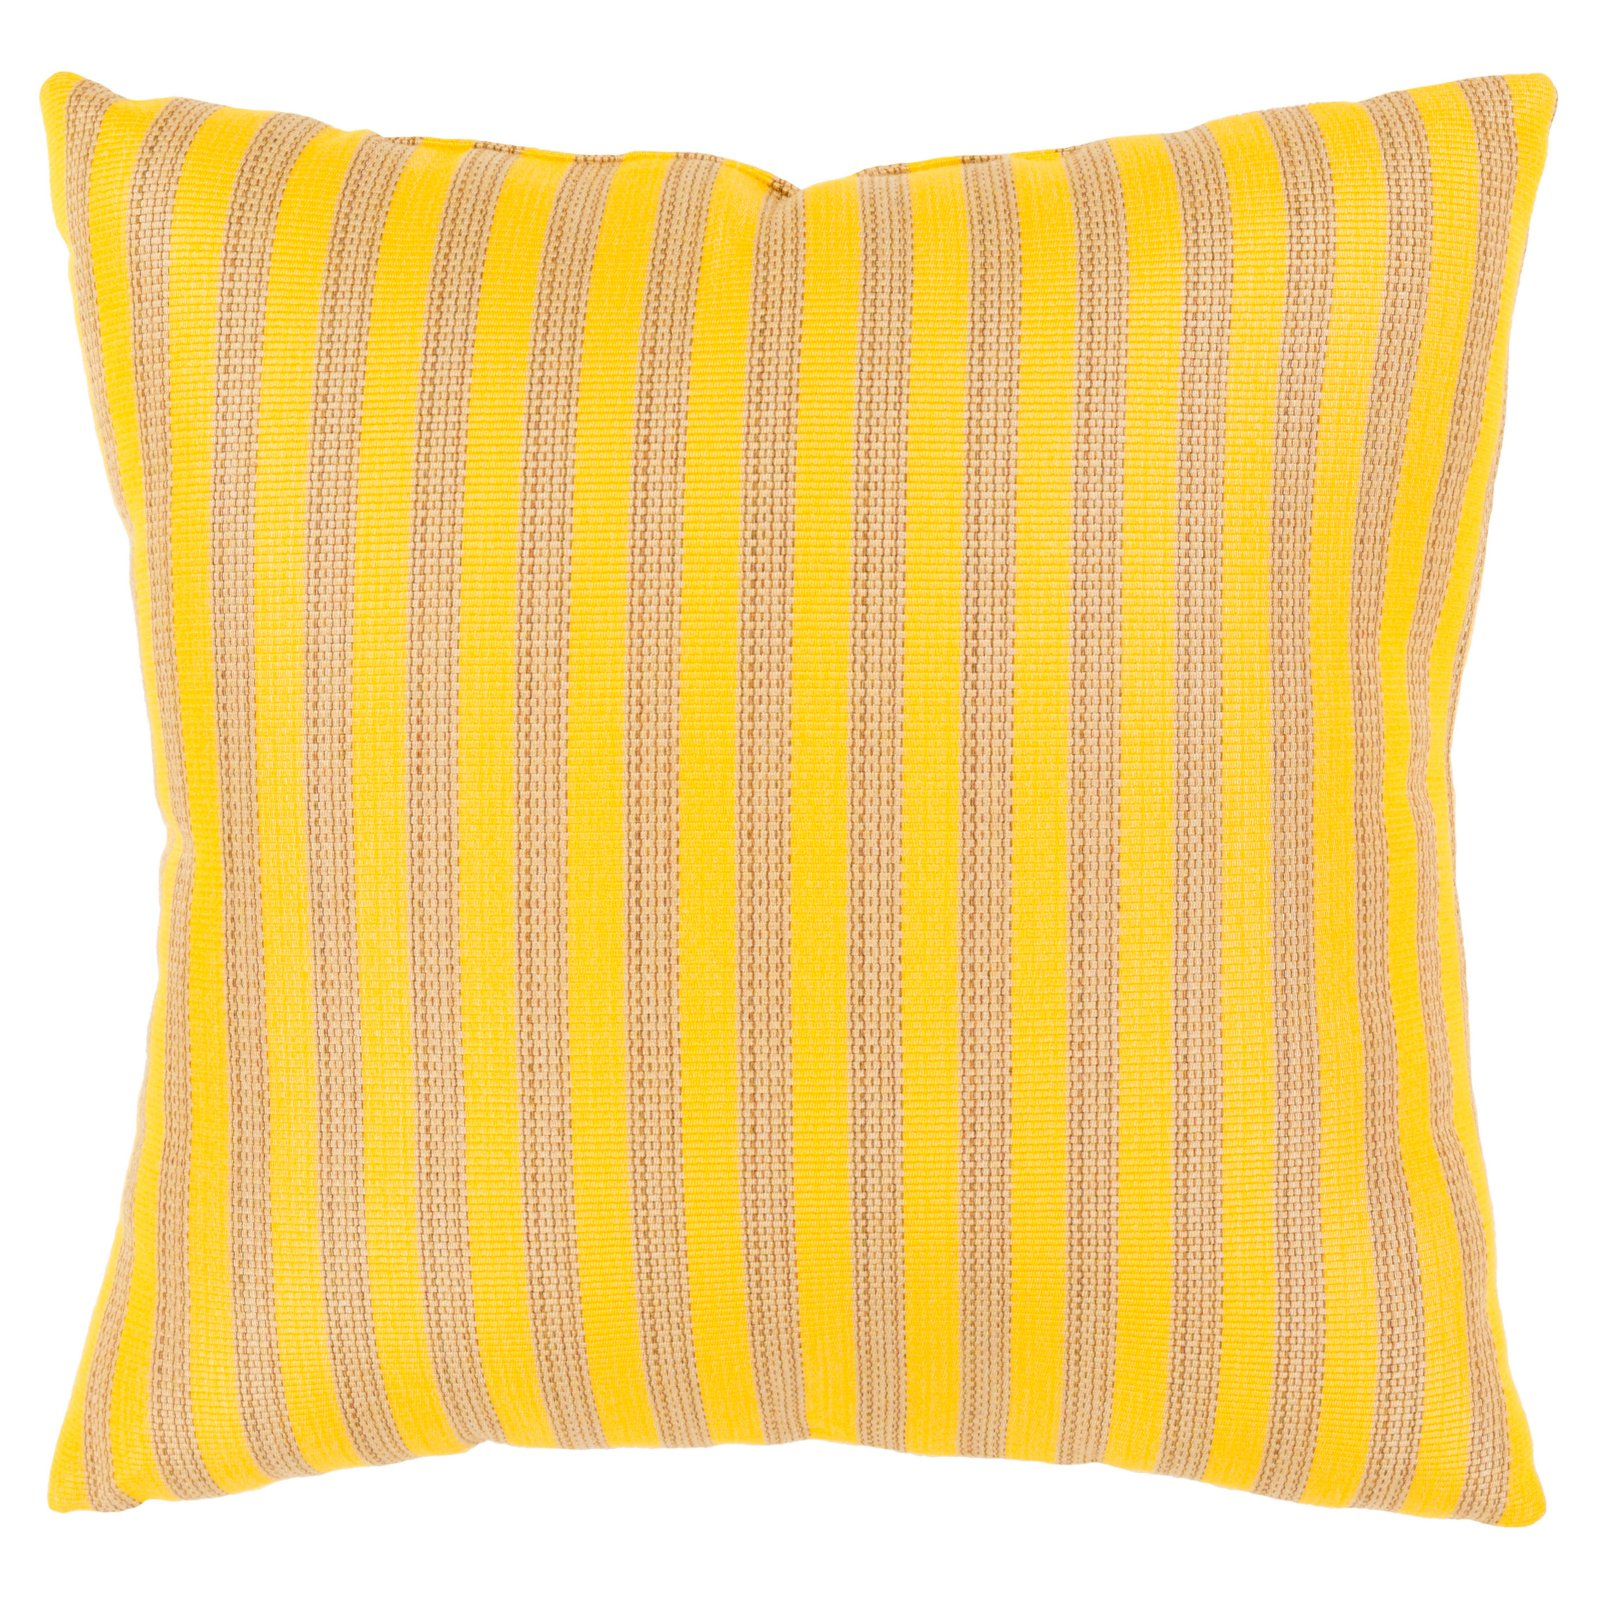 Surya Finn Indoor/Outdoor Pillow